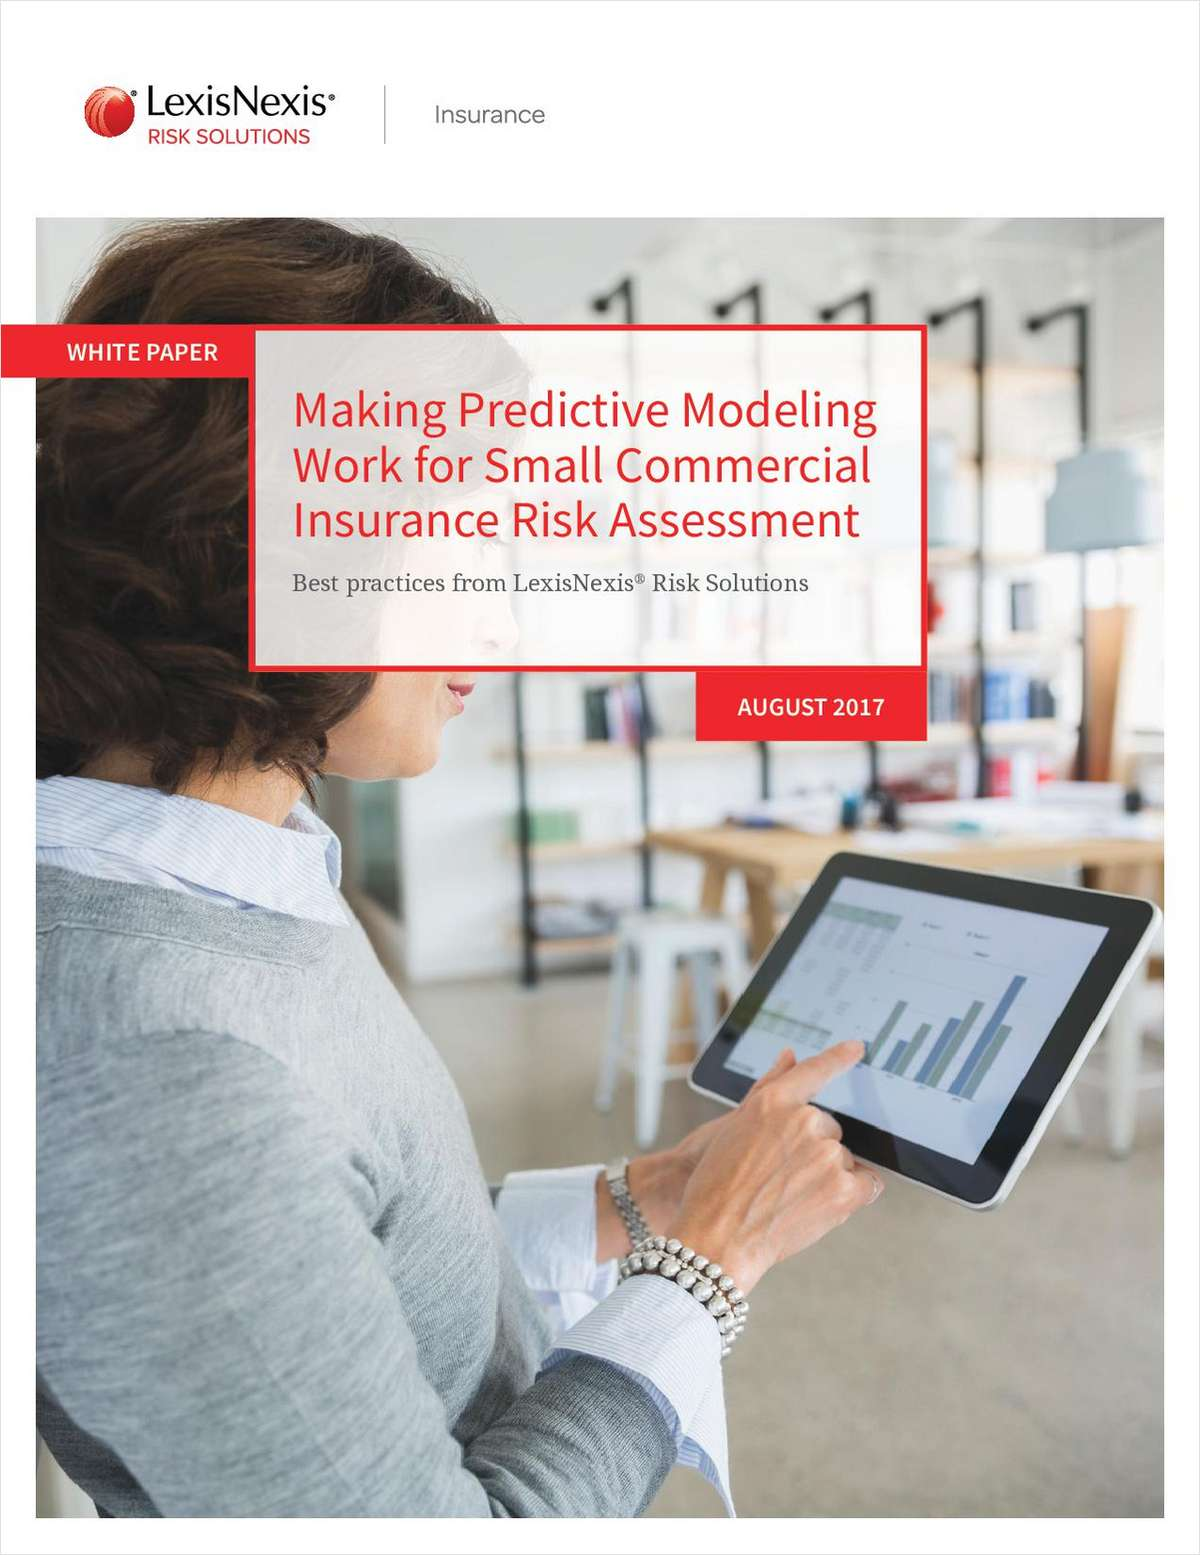 How Predictive Modeling Can Improve Your Small Commercial Insurance Risk Assessment